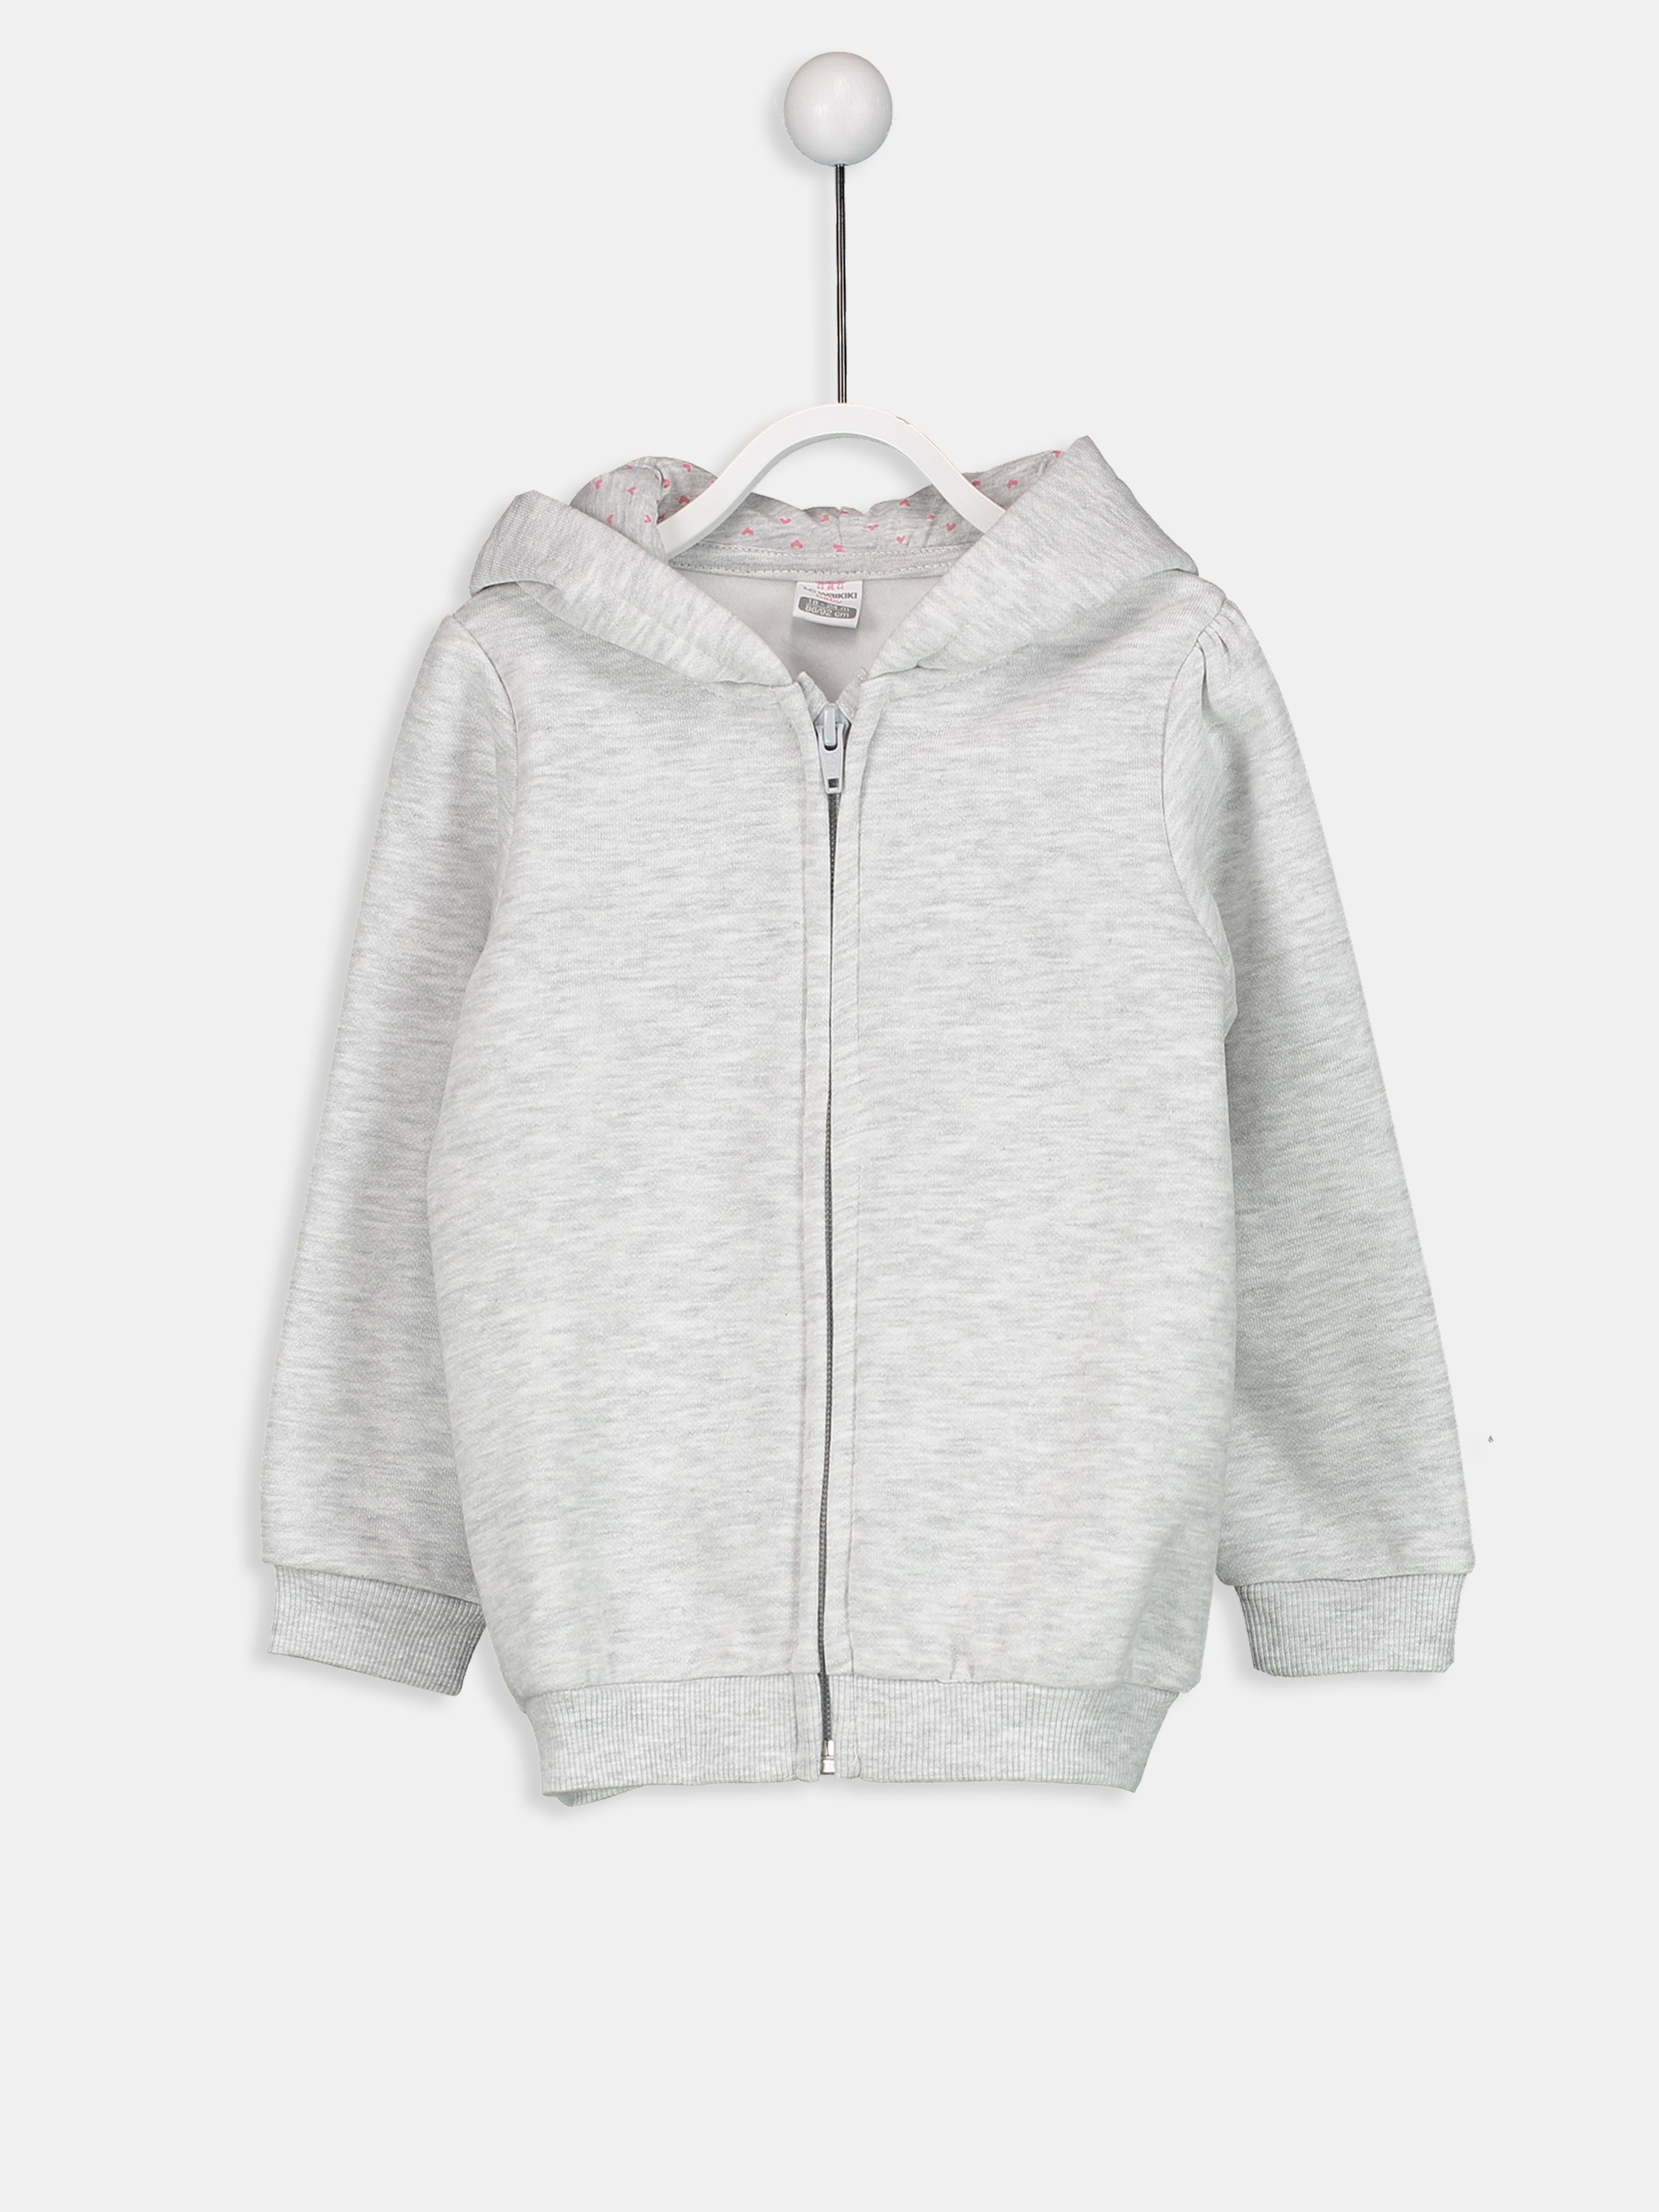 GREY - Sweatshirt - 8W1635Z1